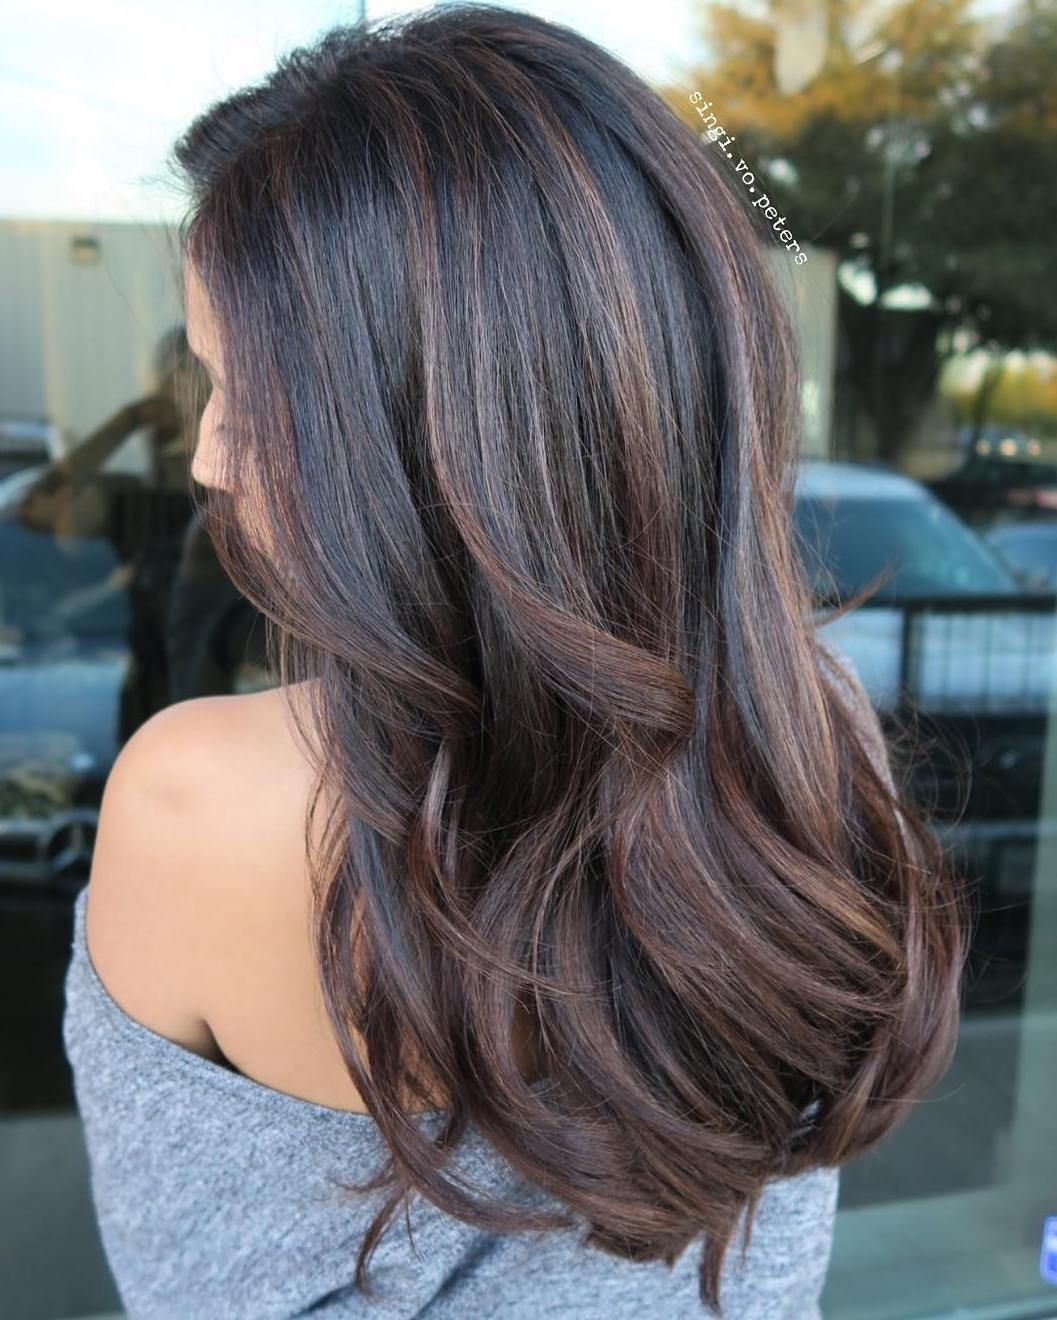 90 balayage hair color ideas with blonde brown and. Black Bedroom Furniture Sets. Home Design Ideas